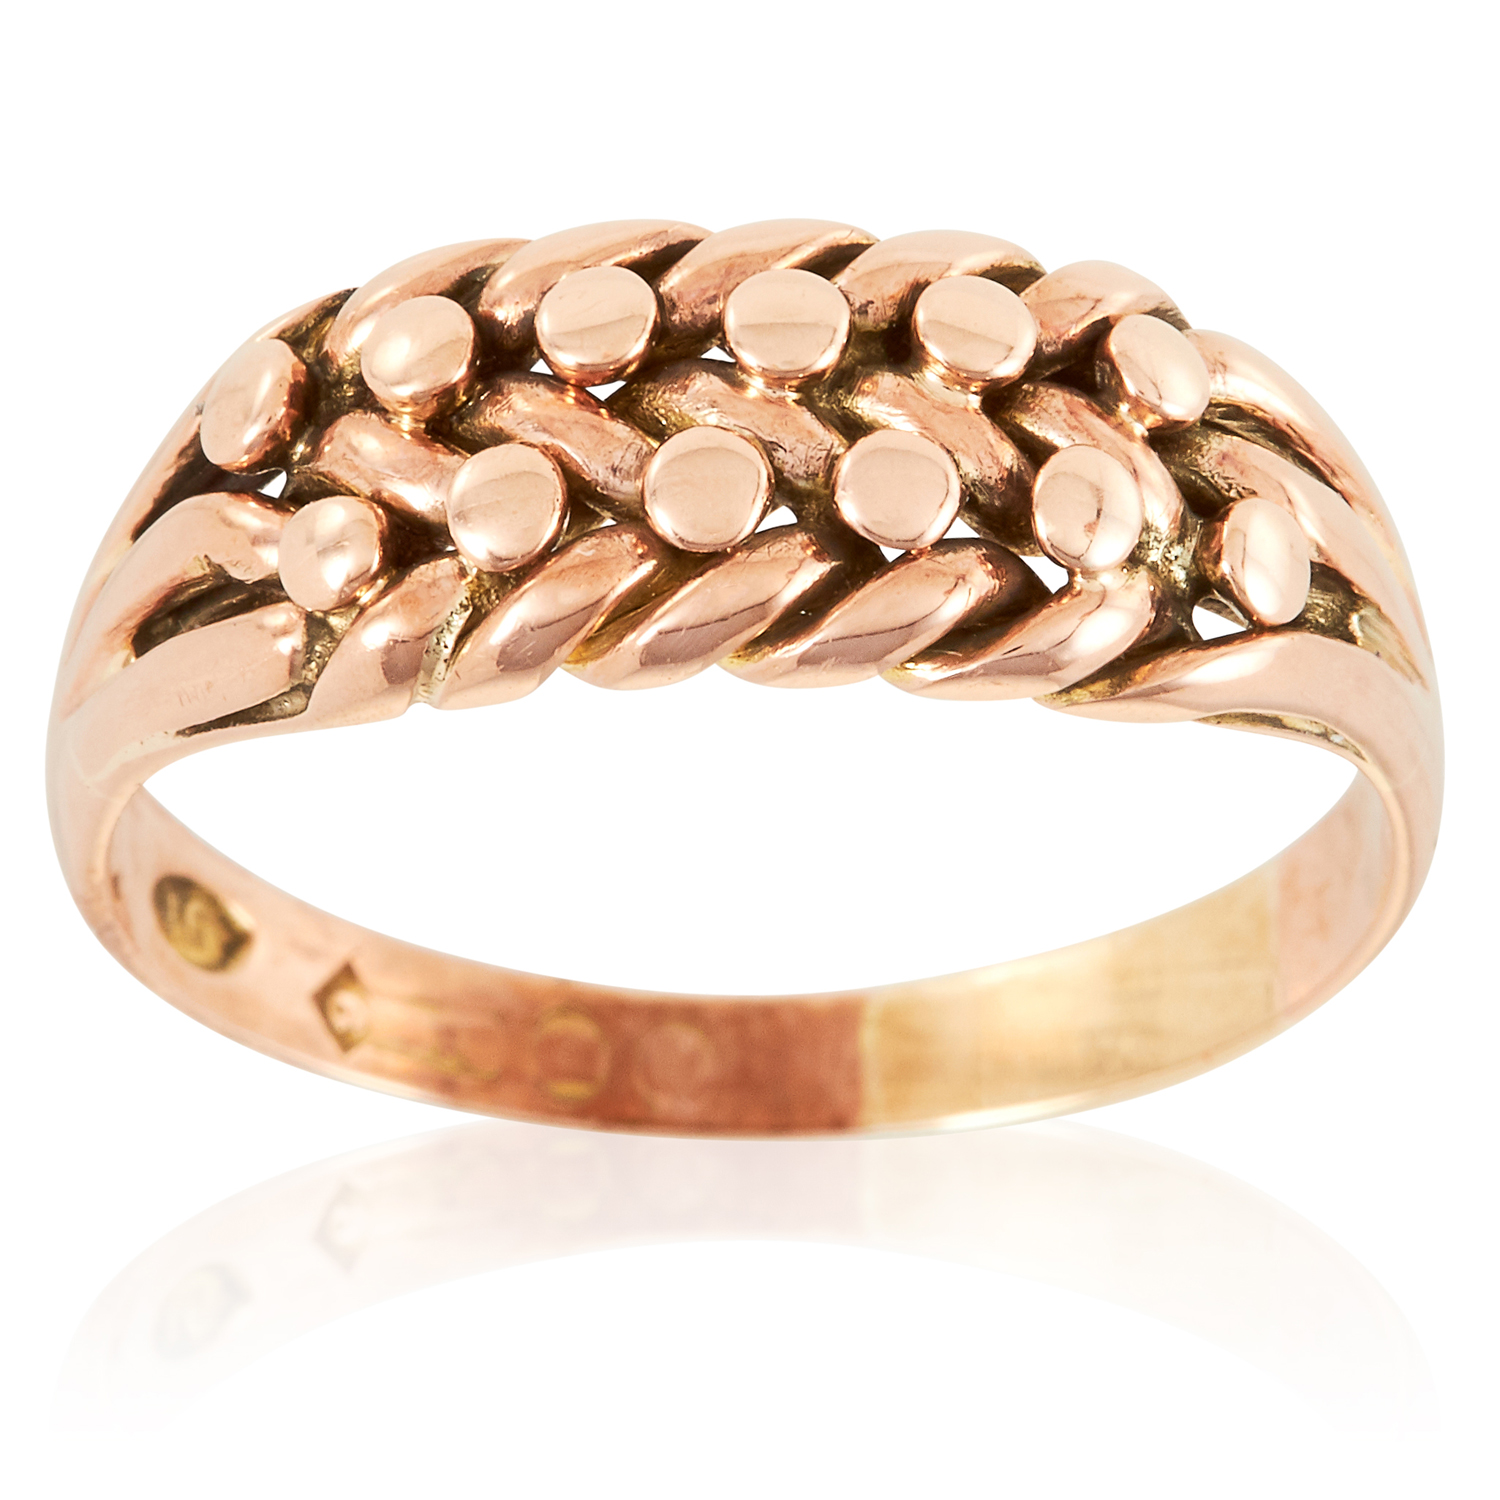 A GOLD KEEPER RING in yellow gold, in intertwined rope design, marked indistinctly, size Q / 8, 3.